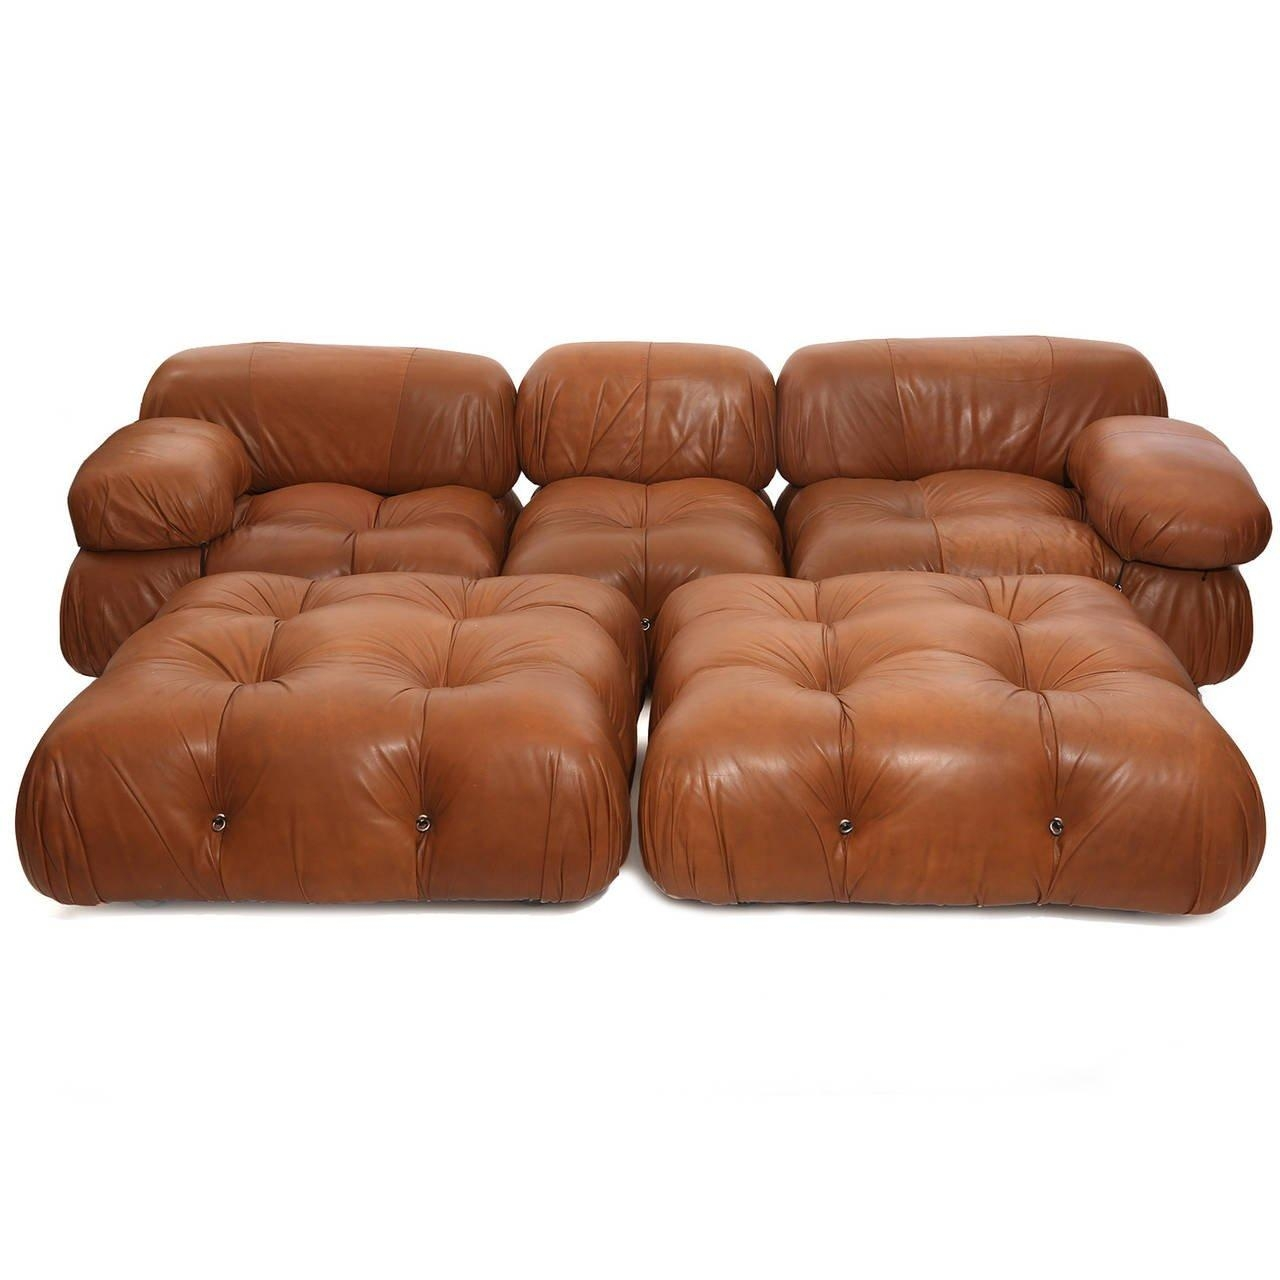 Rare Mario Bellini Camaleonda Sofa And Ottomans At 1Stdibs Pertaining To Bellini Sofas (Image 15 of 20)